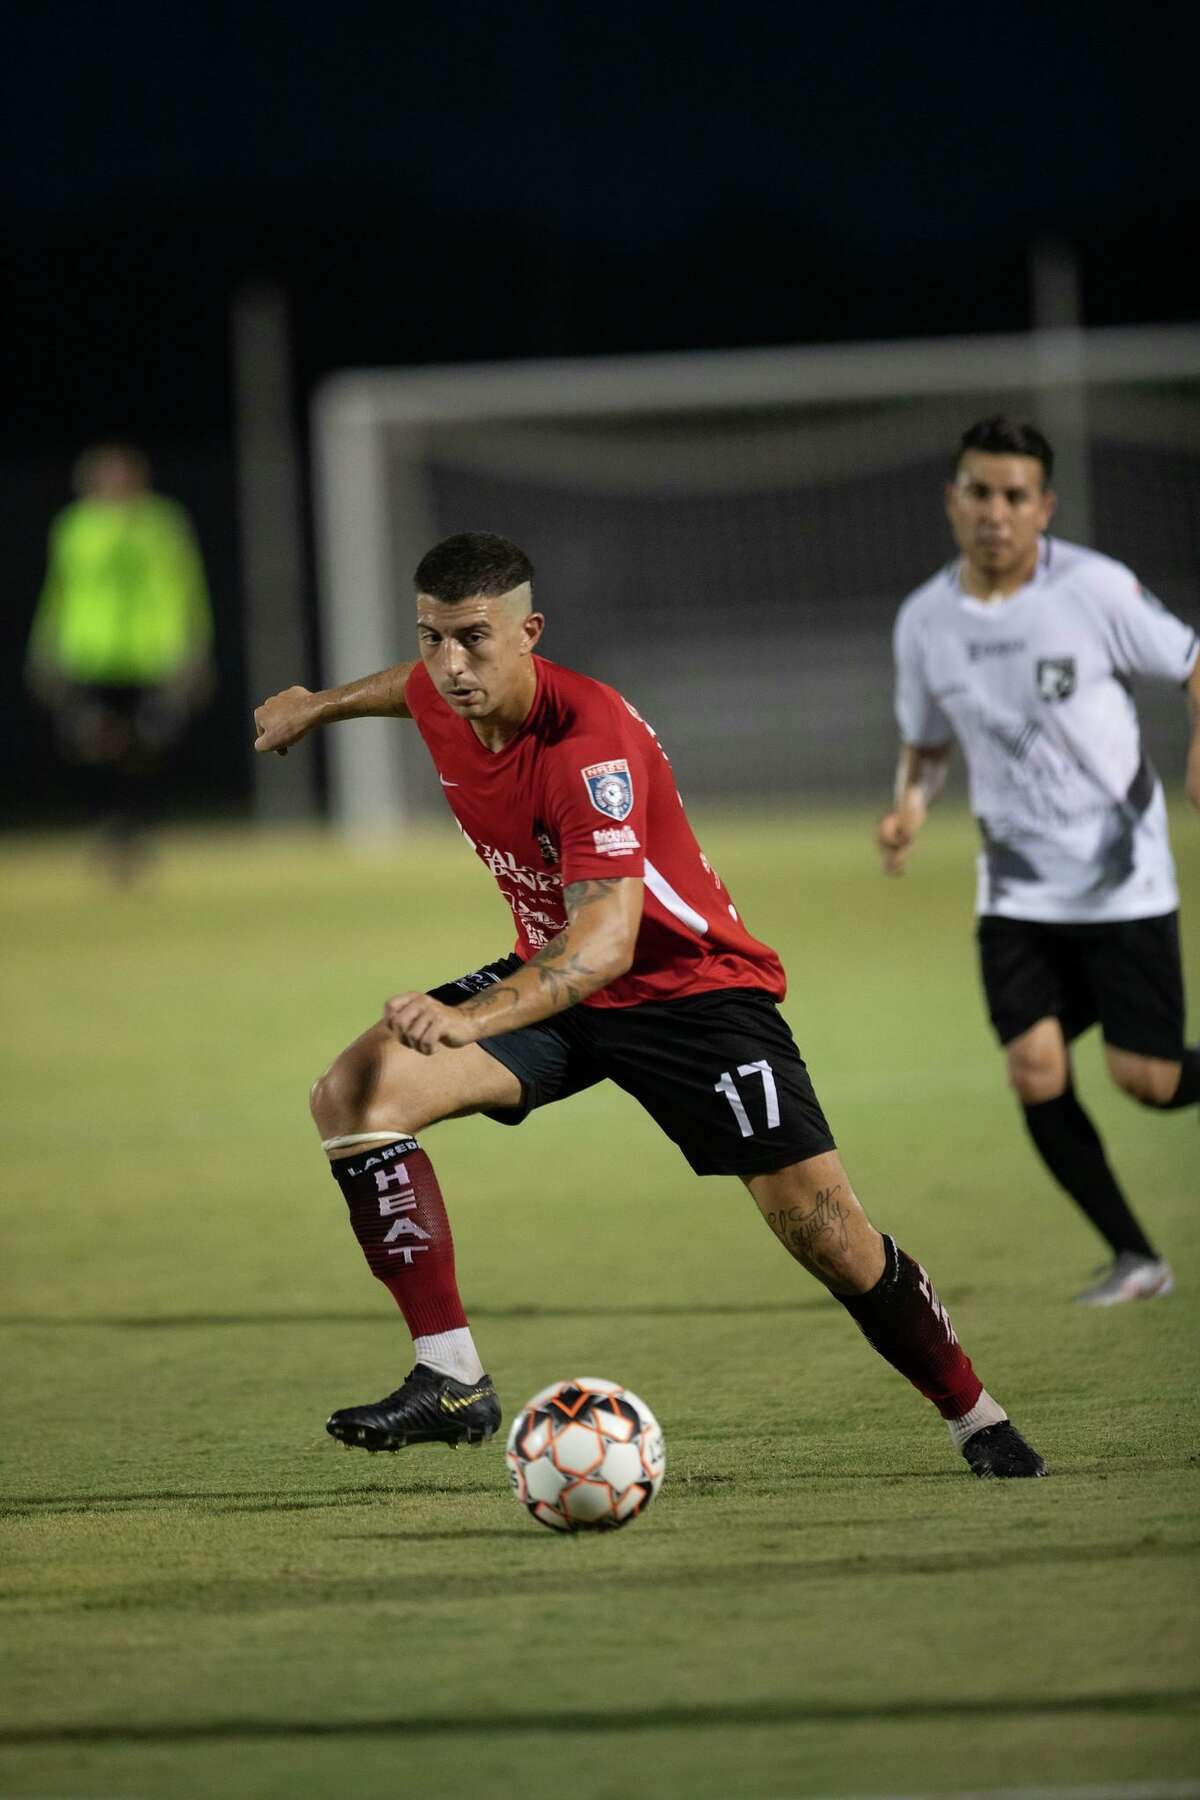 Gabriel Gacovicaj has five goals in the past five games for the Heat including two in the first half of Saturday's 4-2 victory at FC Brownsville.